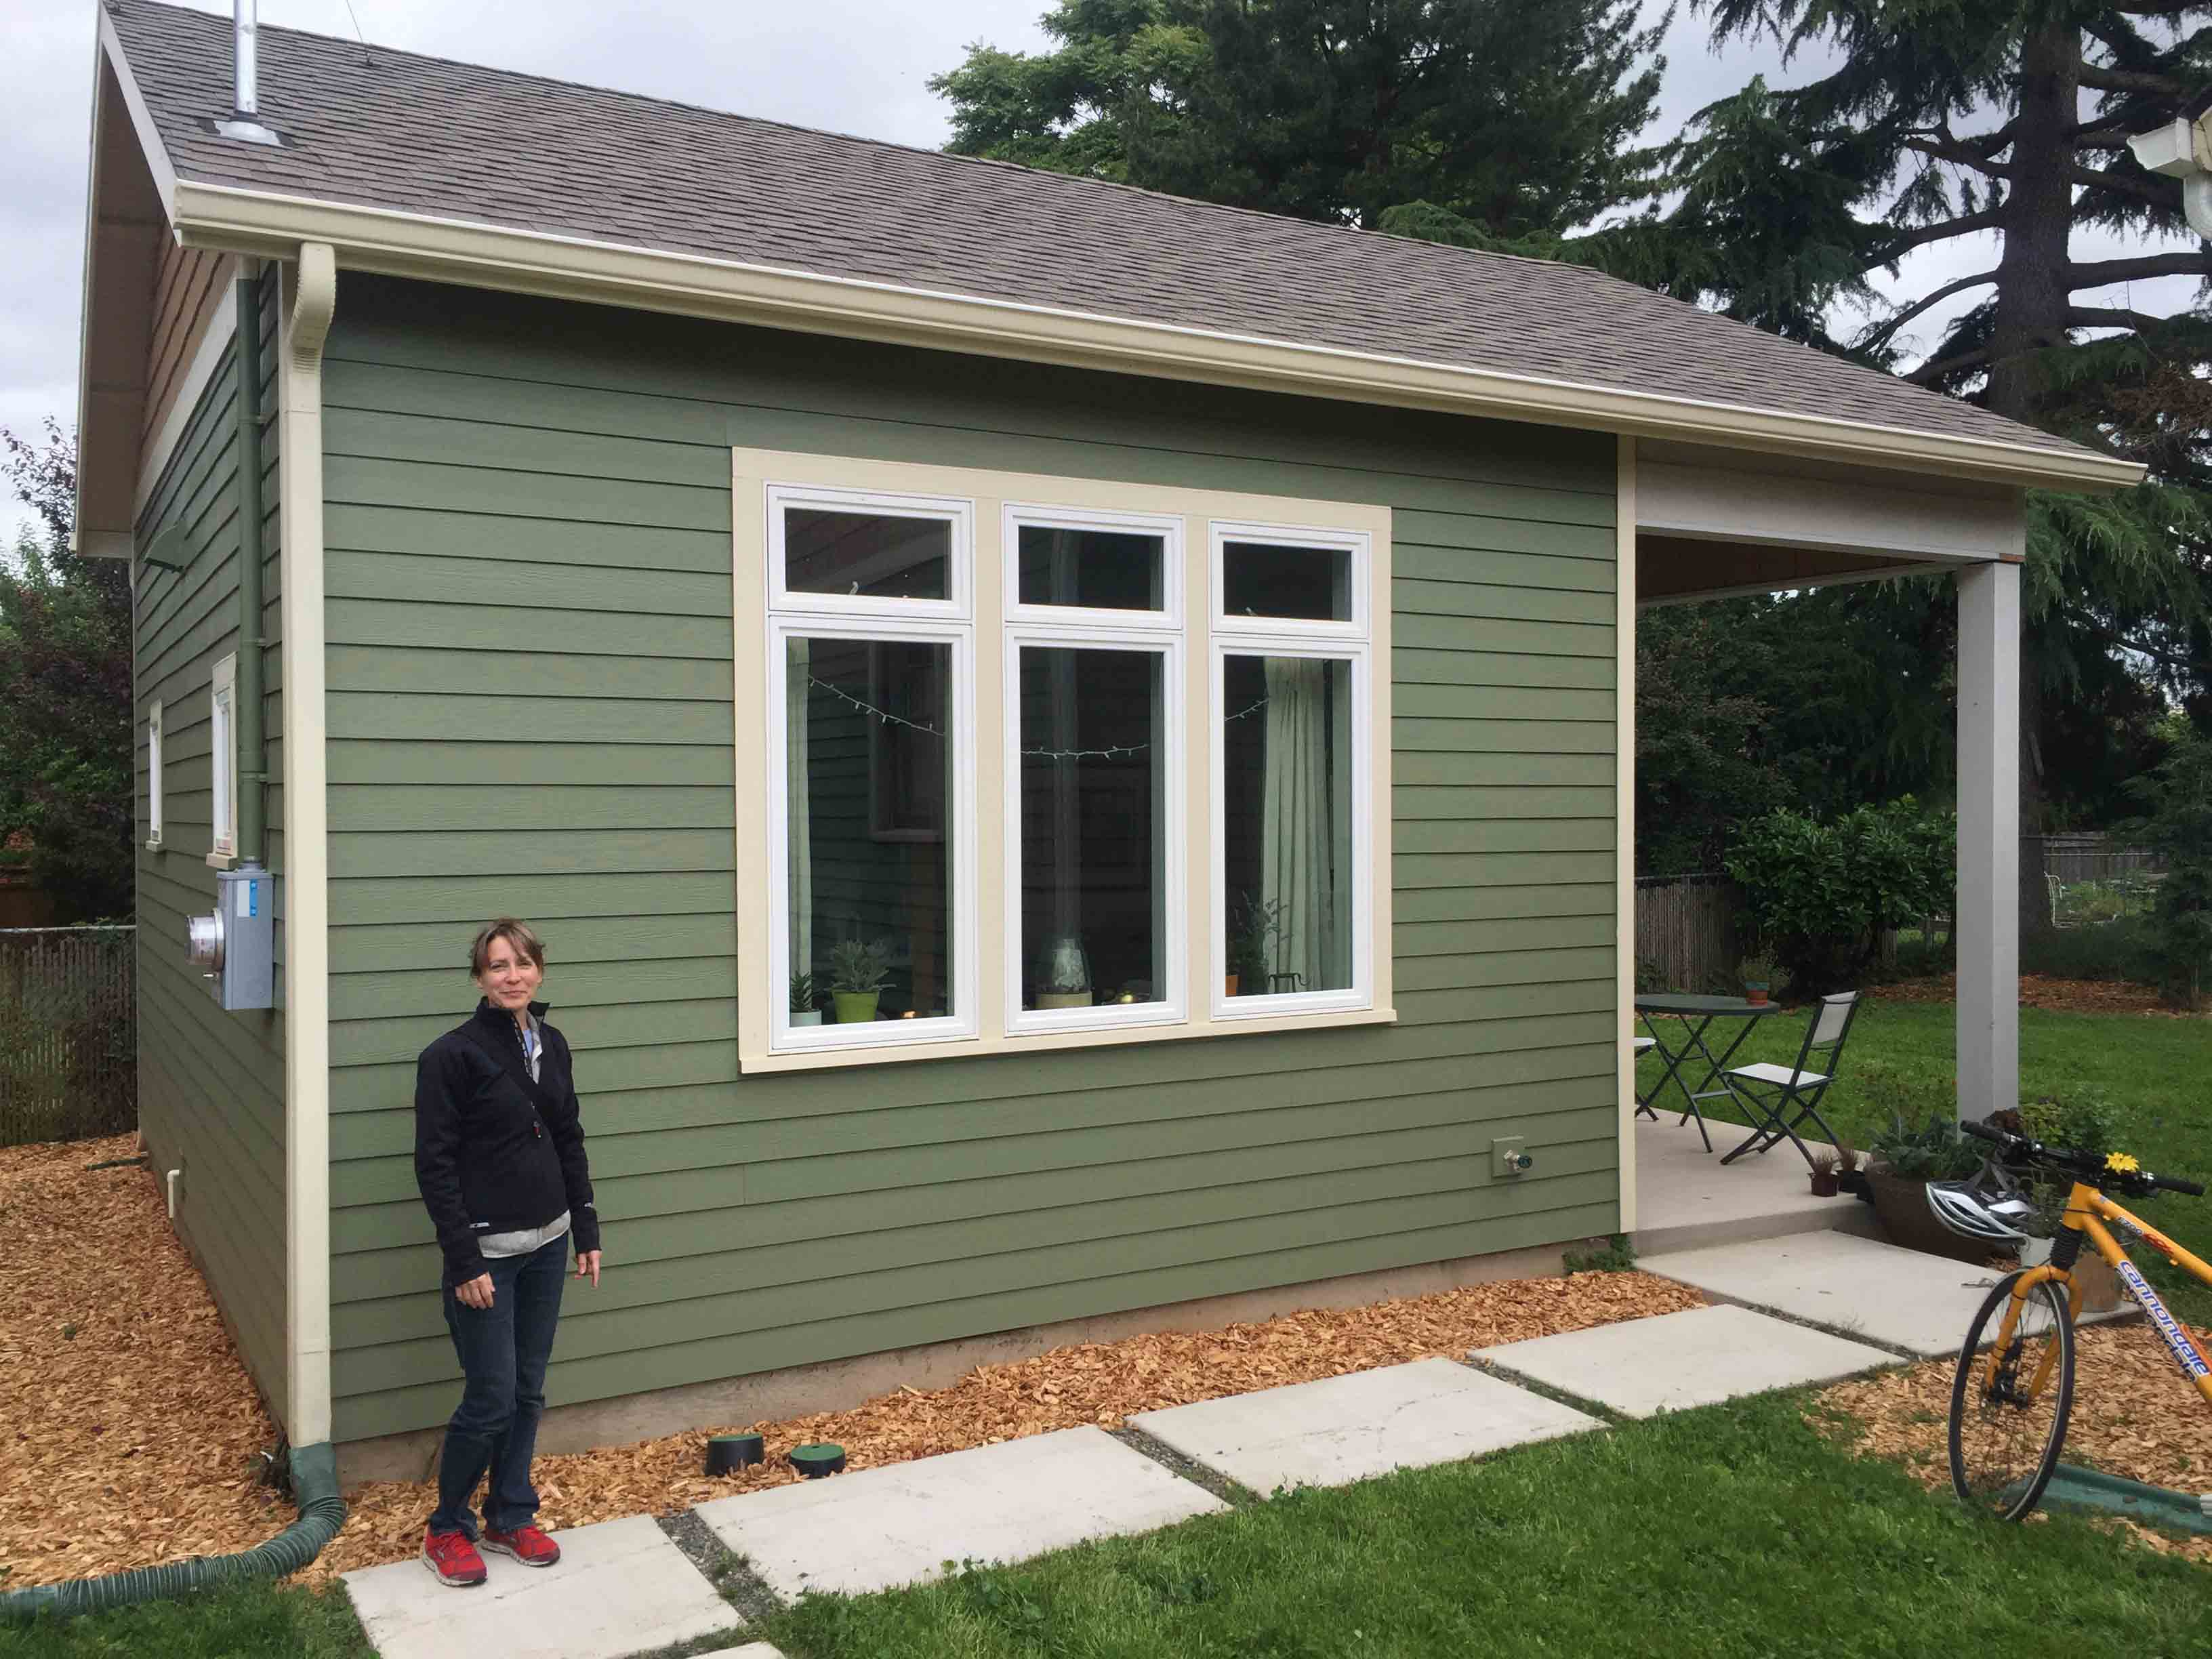 Build Small Live Large Portland Accessory Dwelling Unit Tour September And